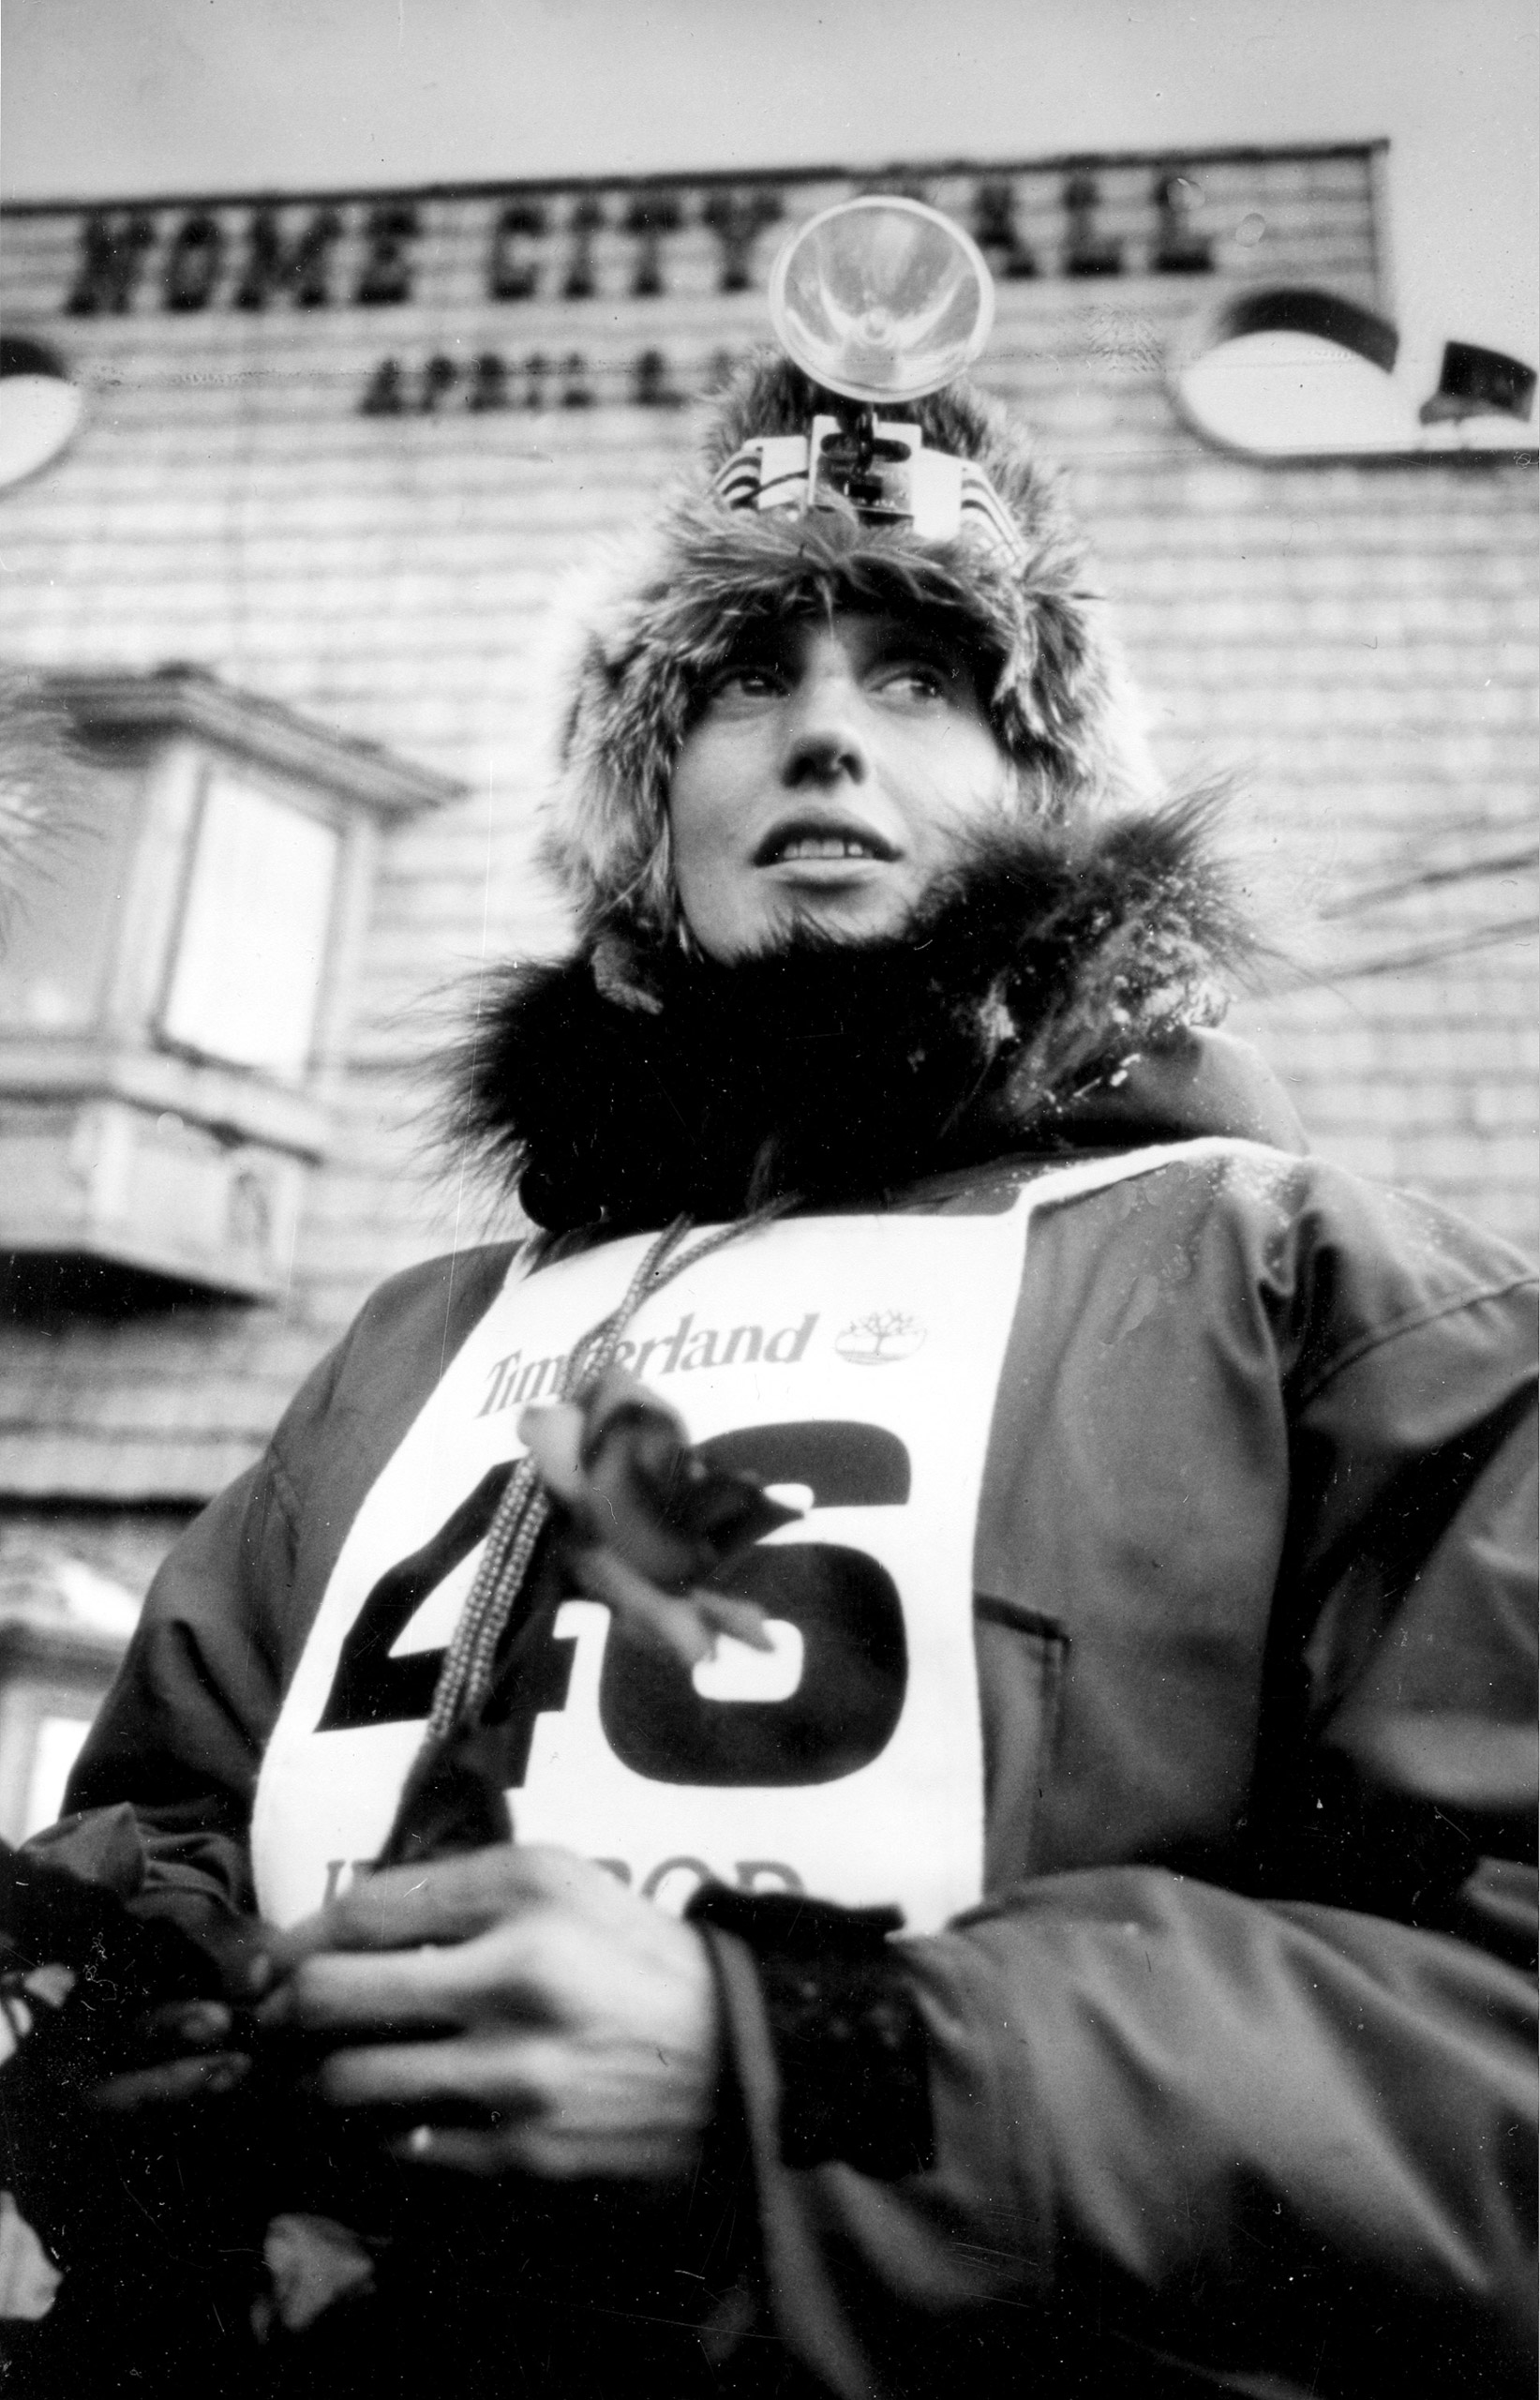 "Musher Libby Riddles stands in front of the City Hall at Nome, Alaska, March 20, 1985, shortly after crossing the finish line, thus becoming the first female champion of the Iditarod Trail Sled Dog Race. ""Two weeks into the 18-day trek, while her competition opted to sit out a fierce snowstorm,"" TIME <a href=""http://time.com/vault/issue/1985-04-01/page/83"">reported</a>, ""the musher from Teller, Alaska, pressed on with her team of 13 dogs."""